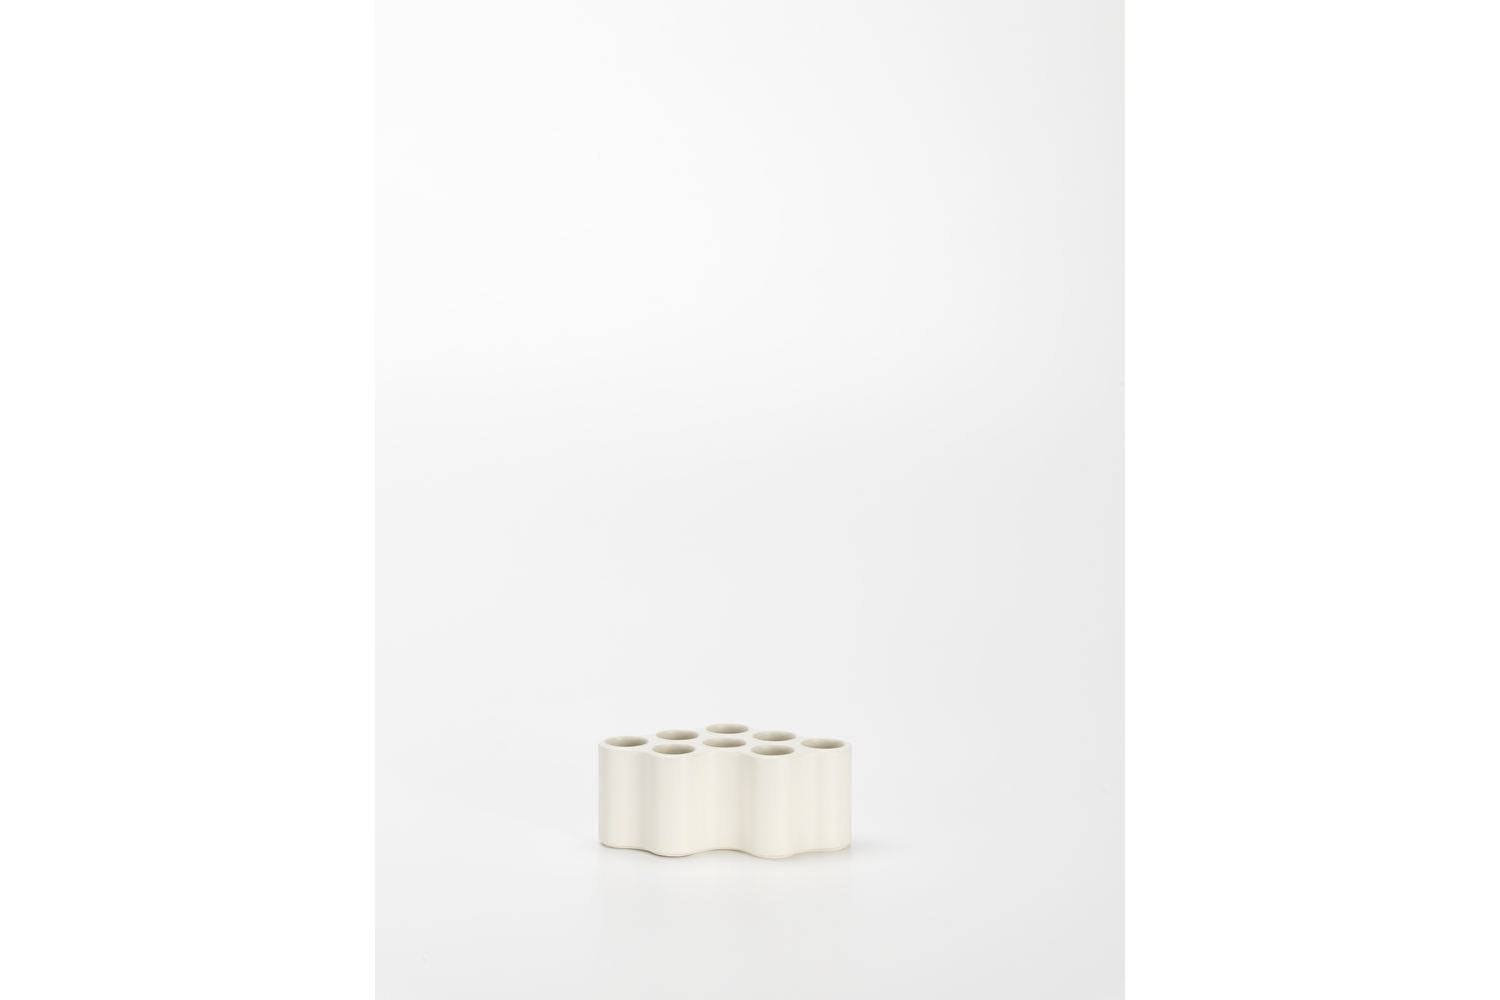 Nuage Ceramic Small Vase by Ronan & Erwan Bouroullec for Vitra